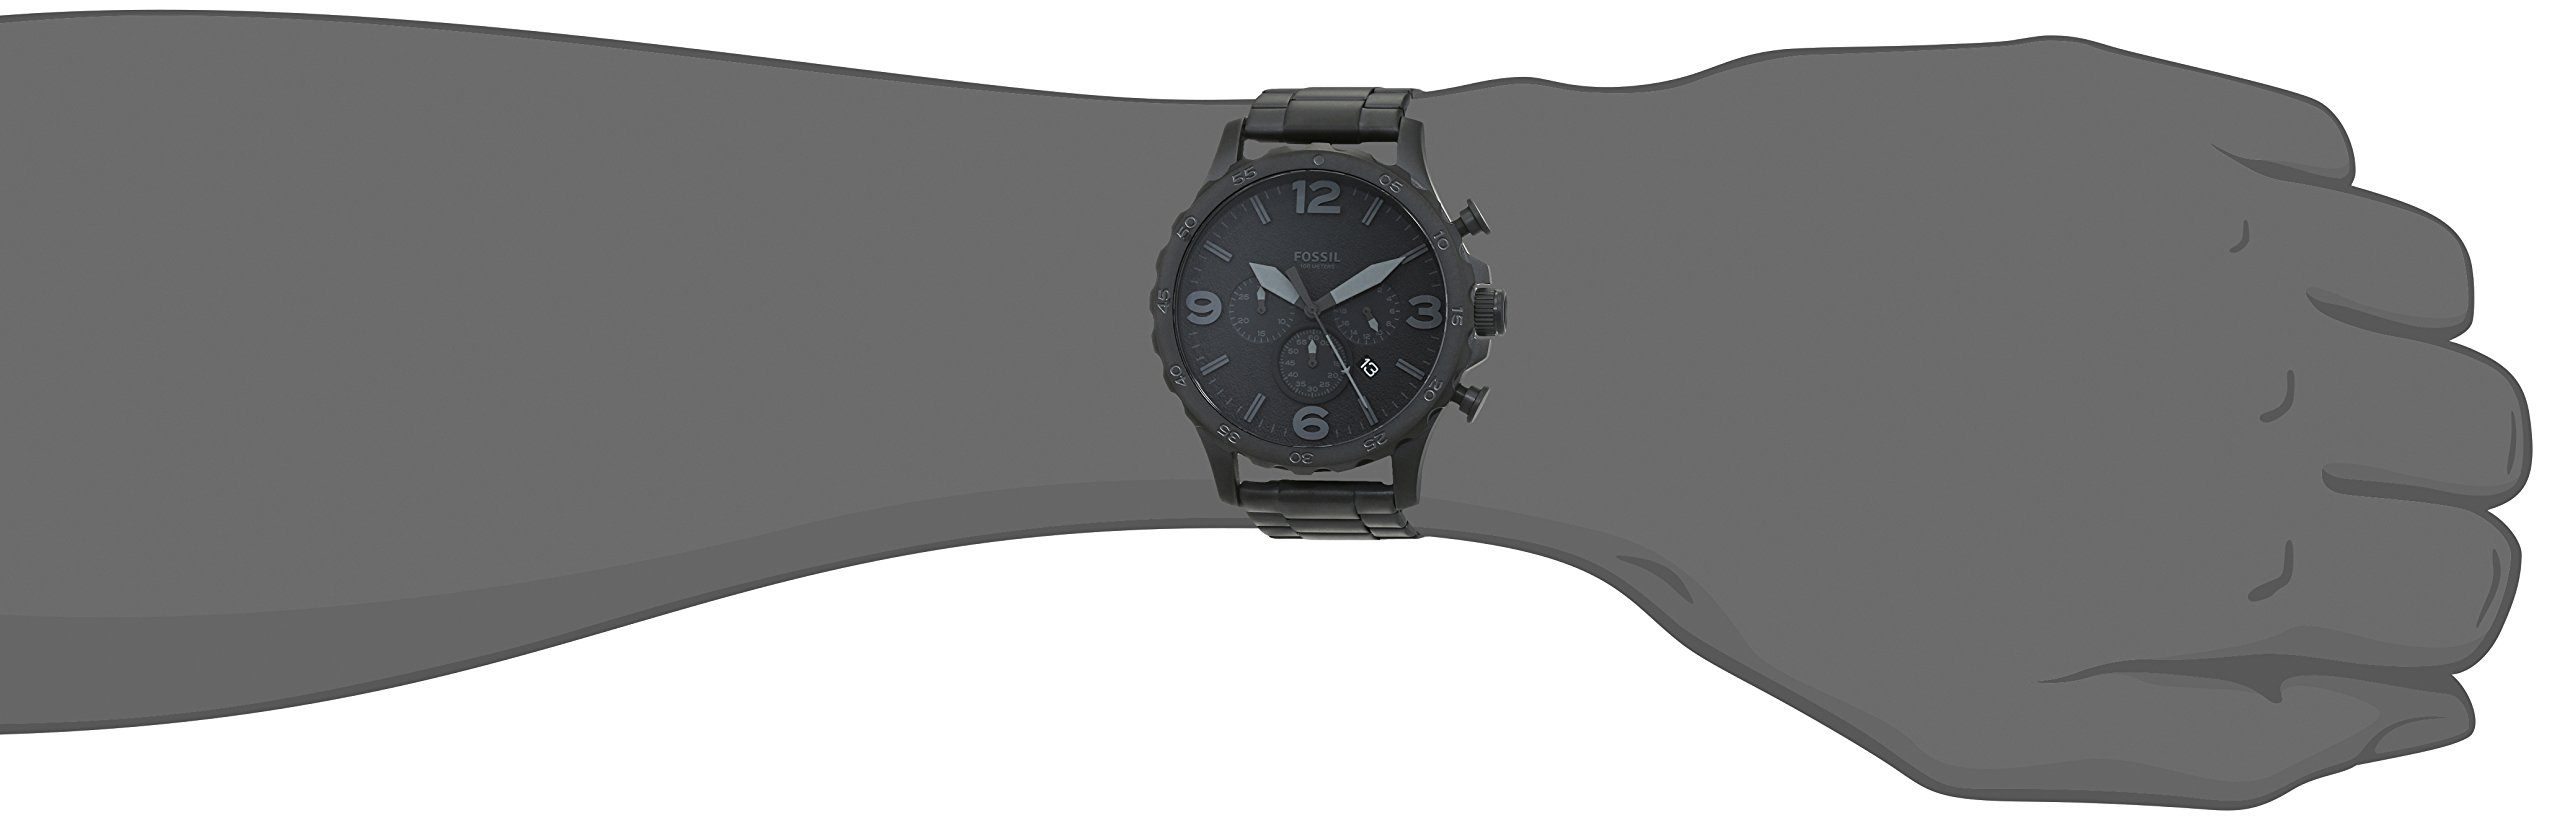 Fossil Men's Nate Quartz Stainless Steel Chronograph Watch, Color: Black (Model: JR1401) by Fossil (Image #4)